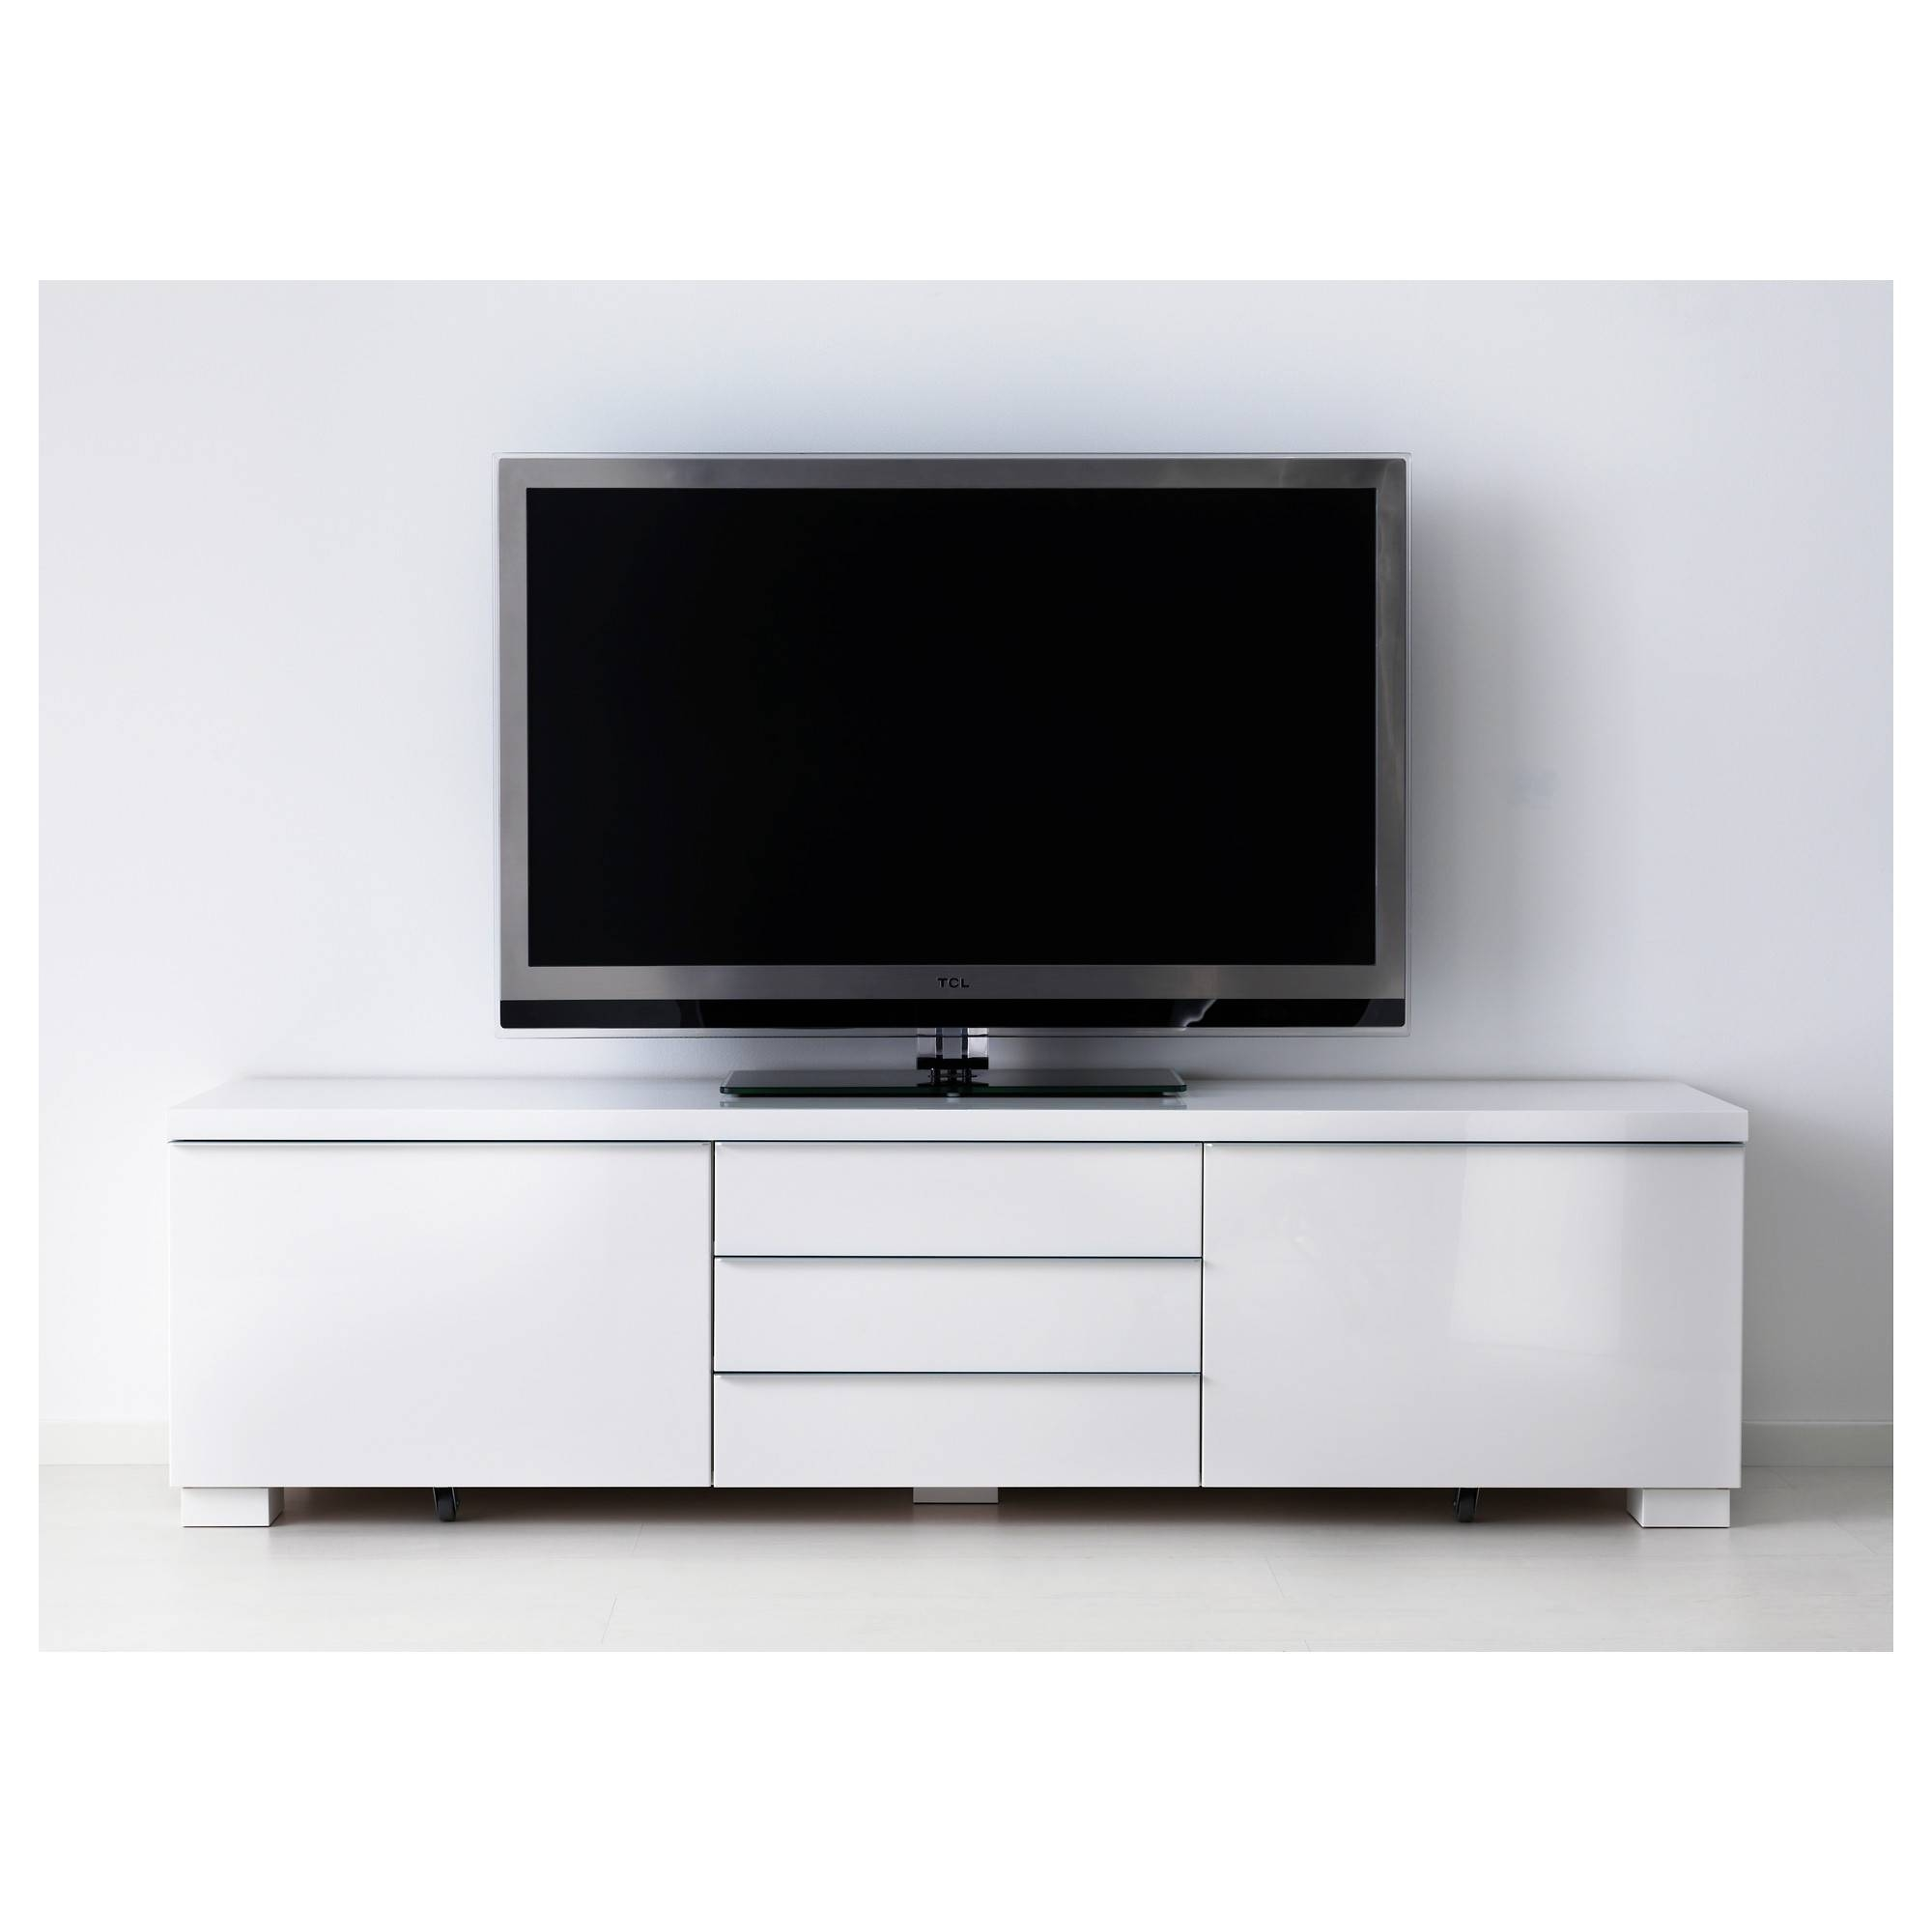 15 Best Ideas Of White High Gloss Tv Stands